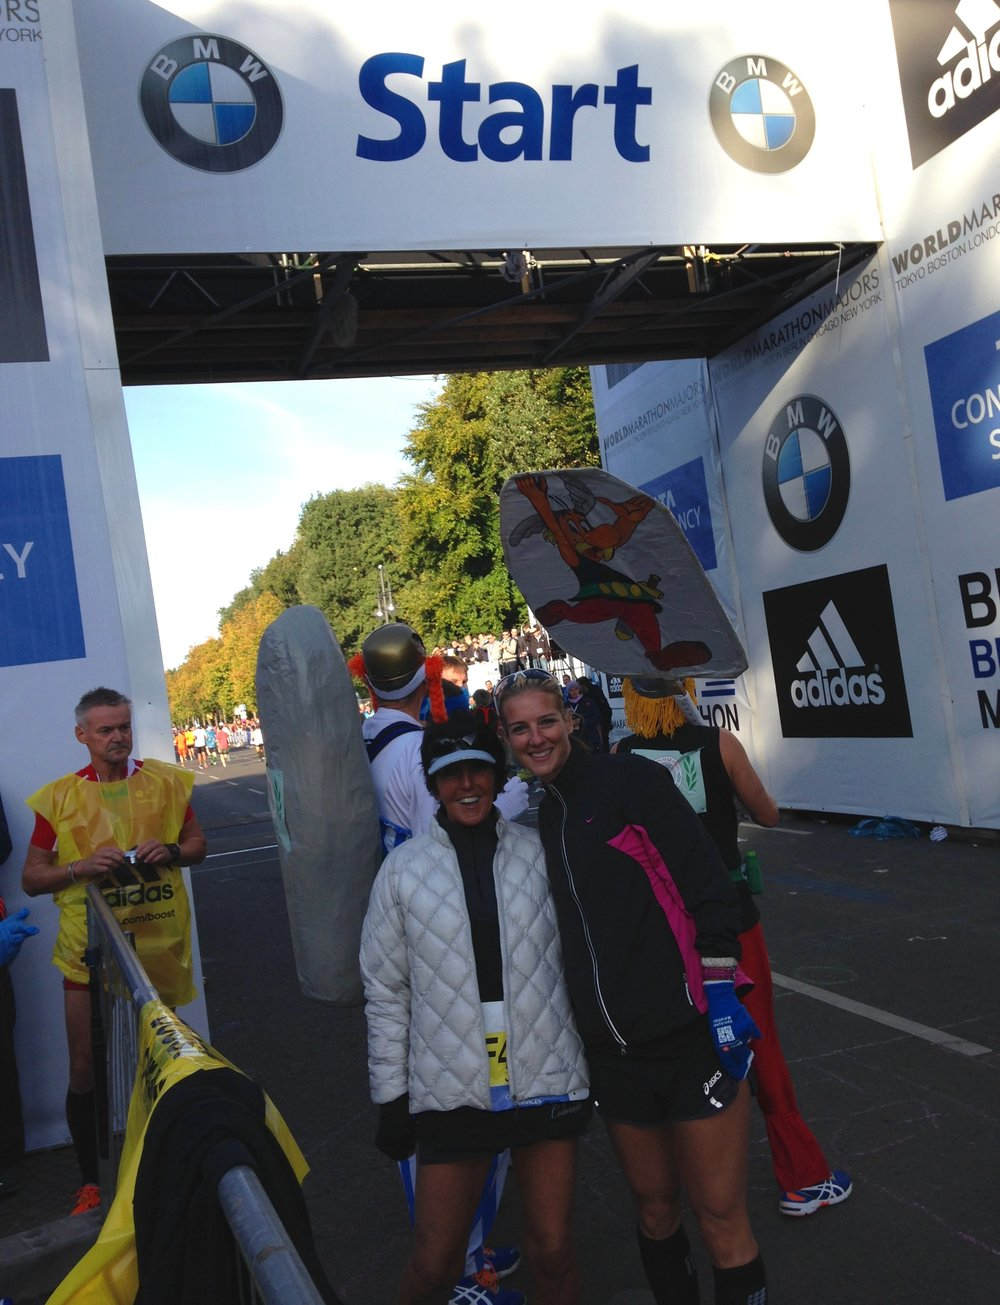 Global friend Jacqui with FIT Founder Kelly McLay at the Berlin Marathon starting line.